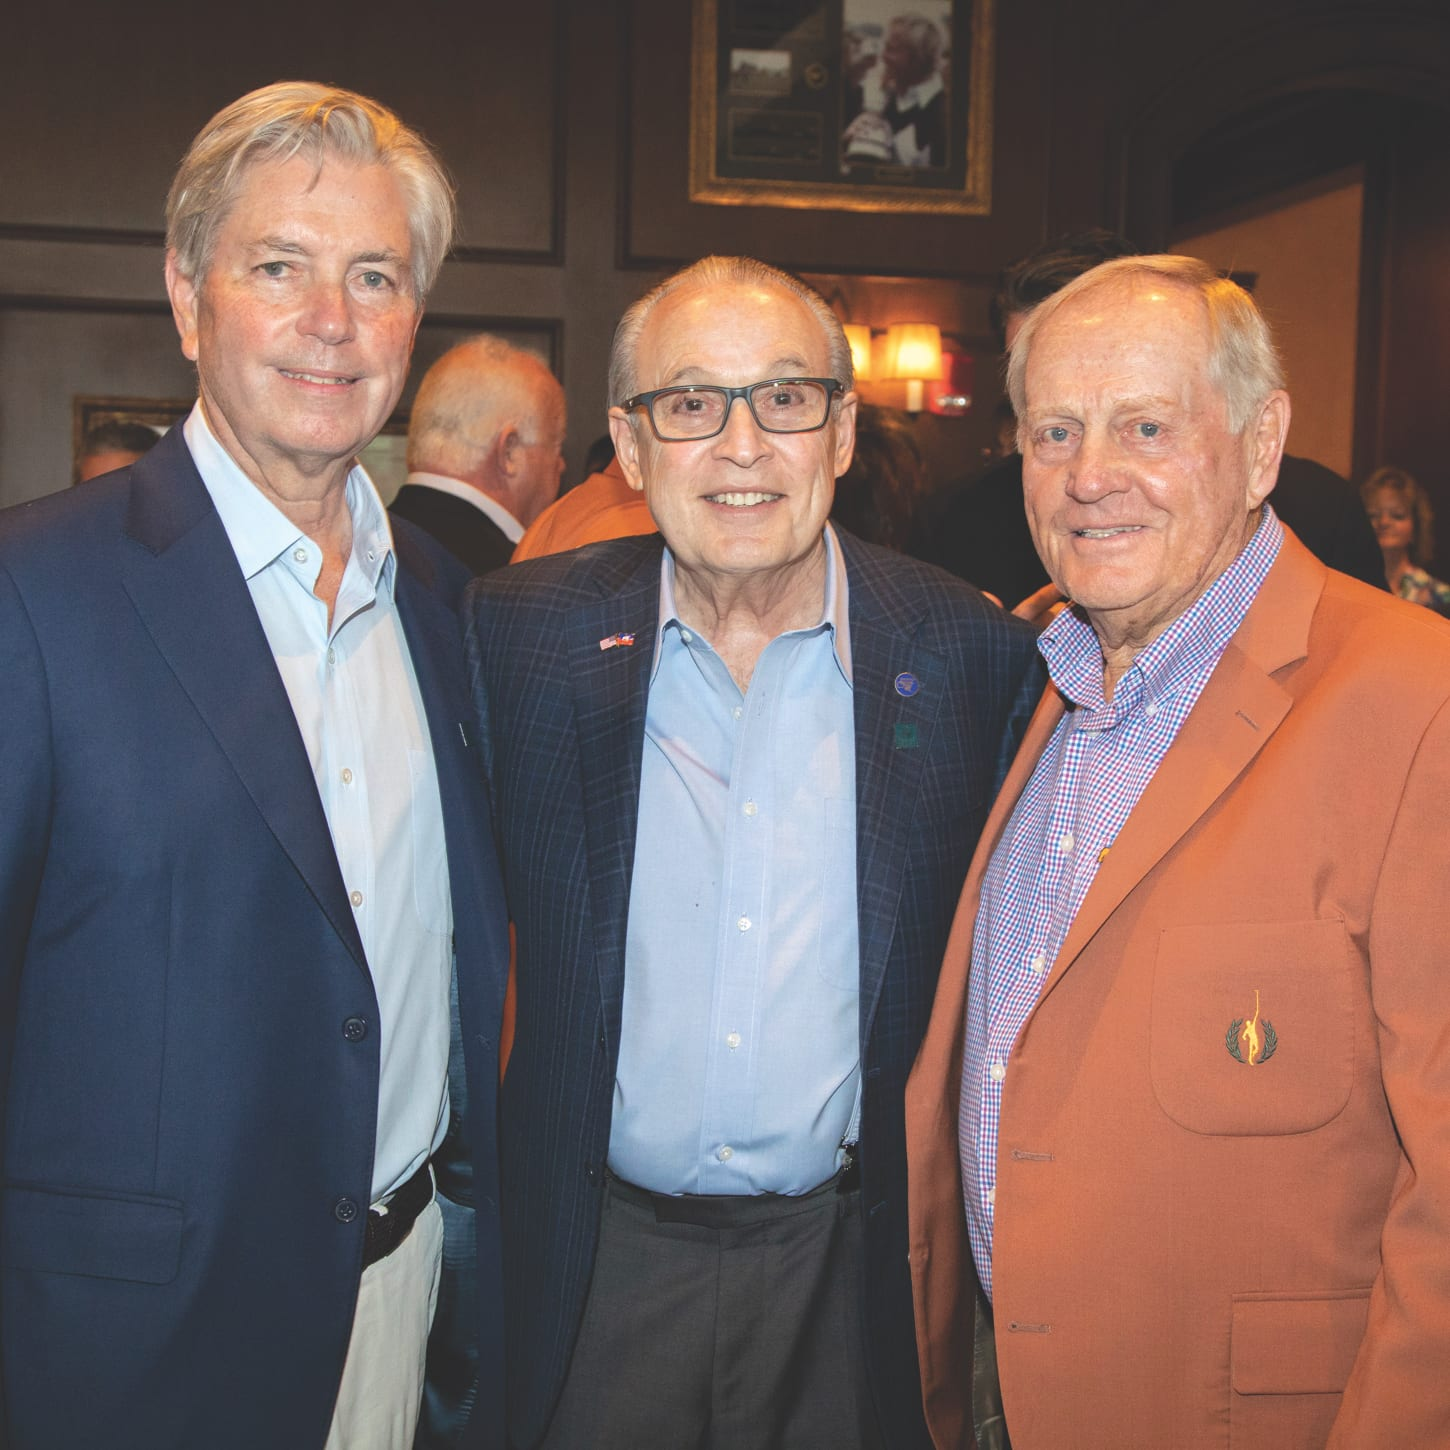 Mark Dalton, Barth A. Green, M.D. and Jack Nicklaus